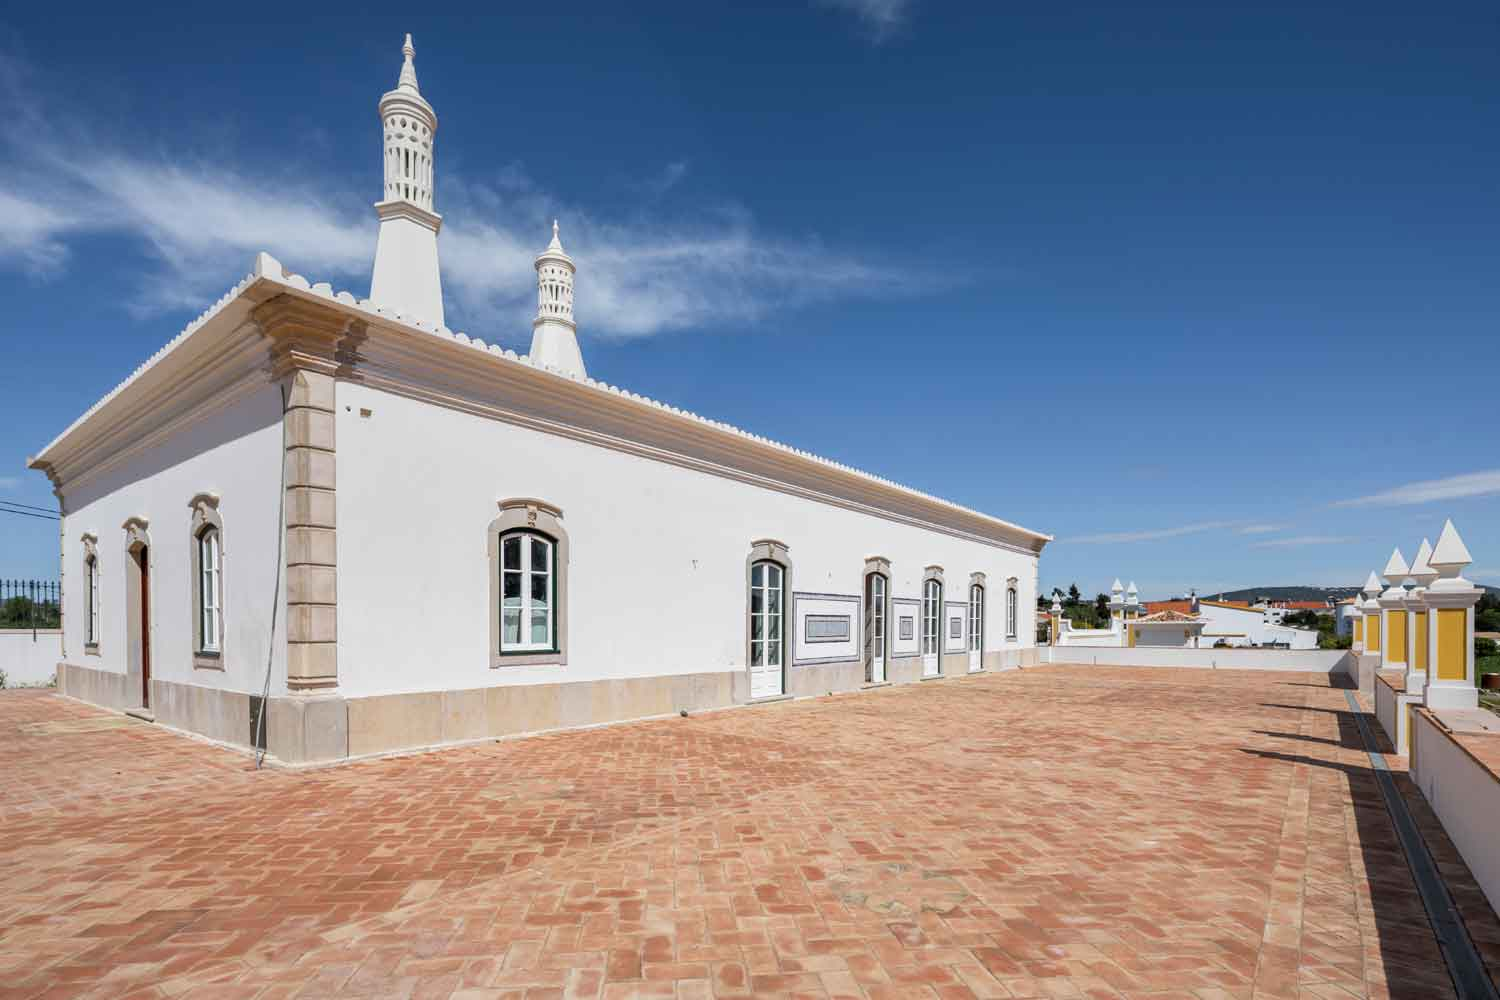 b>Loule, Algarve, Portugal</b><br/><i>4 Bedrooms, 3,767.4 sq. ft.</i><br/>19th-century manor house